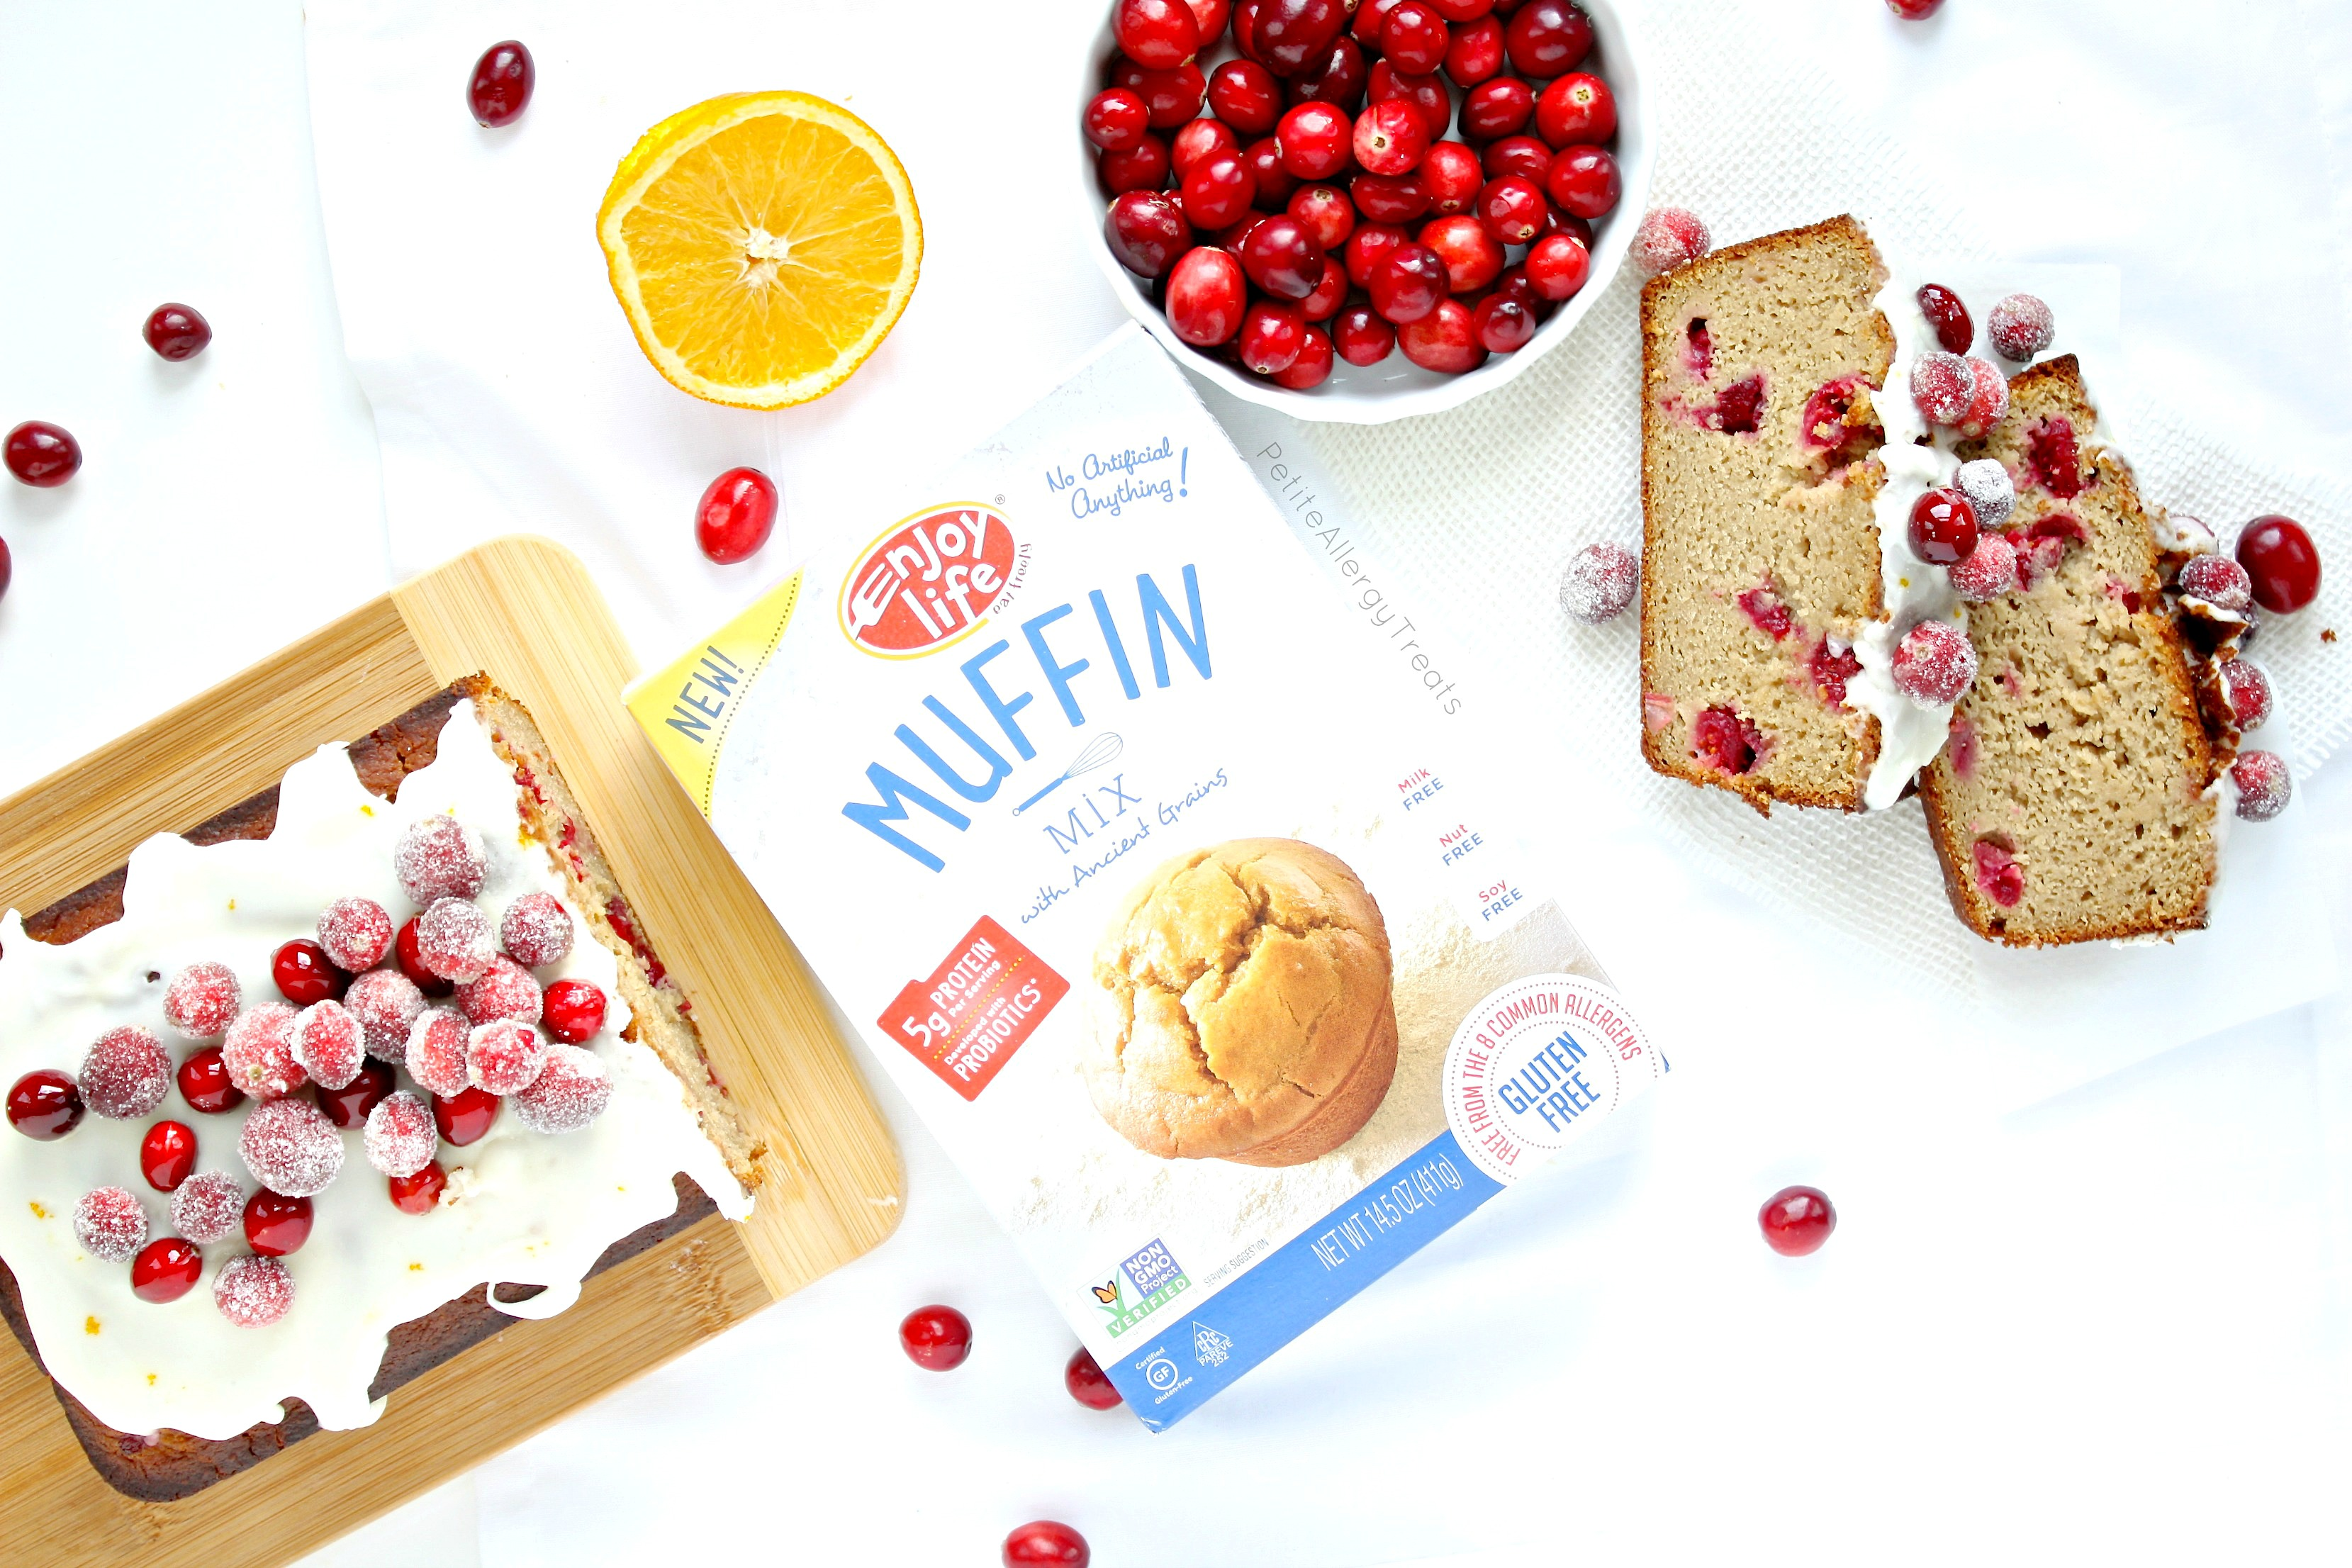 Gluten Free Orange Cranberry Bread Recipe (dairy free Vegan egg free) Beautiful easy sparkling cranberries adore this super moist pound cake! #tothefullest